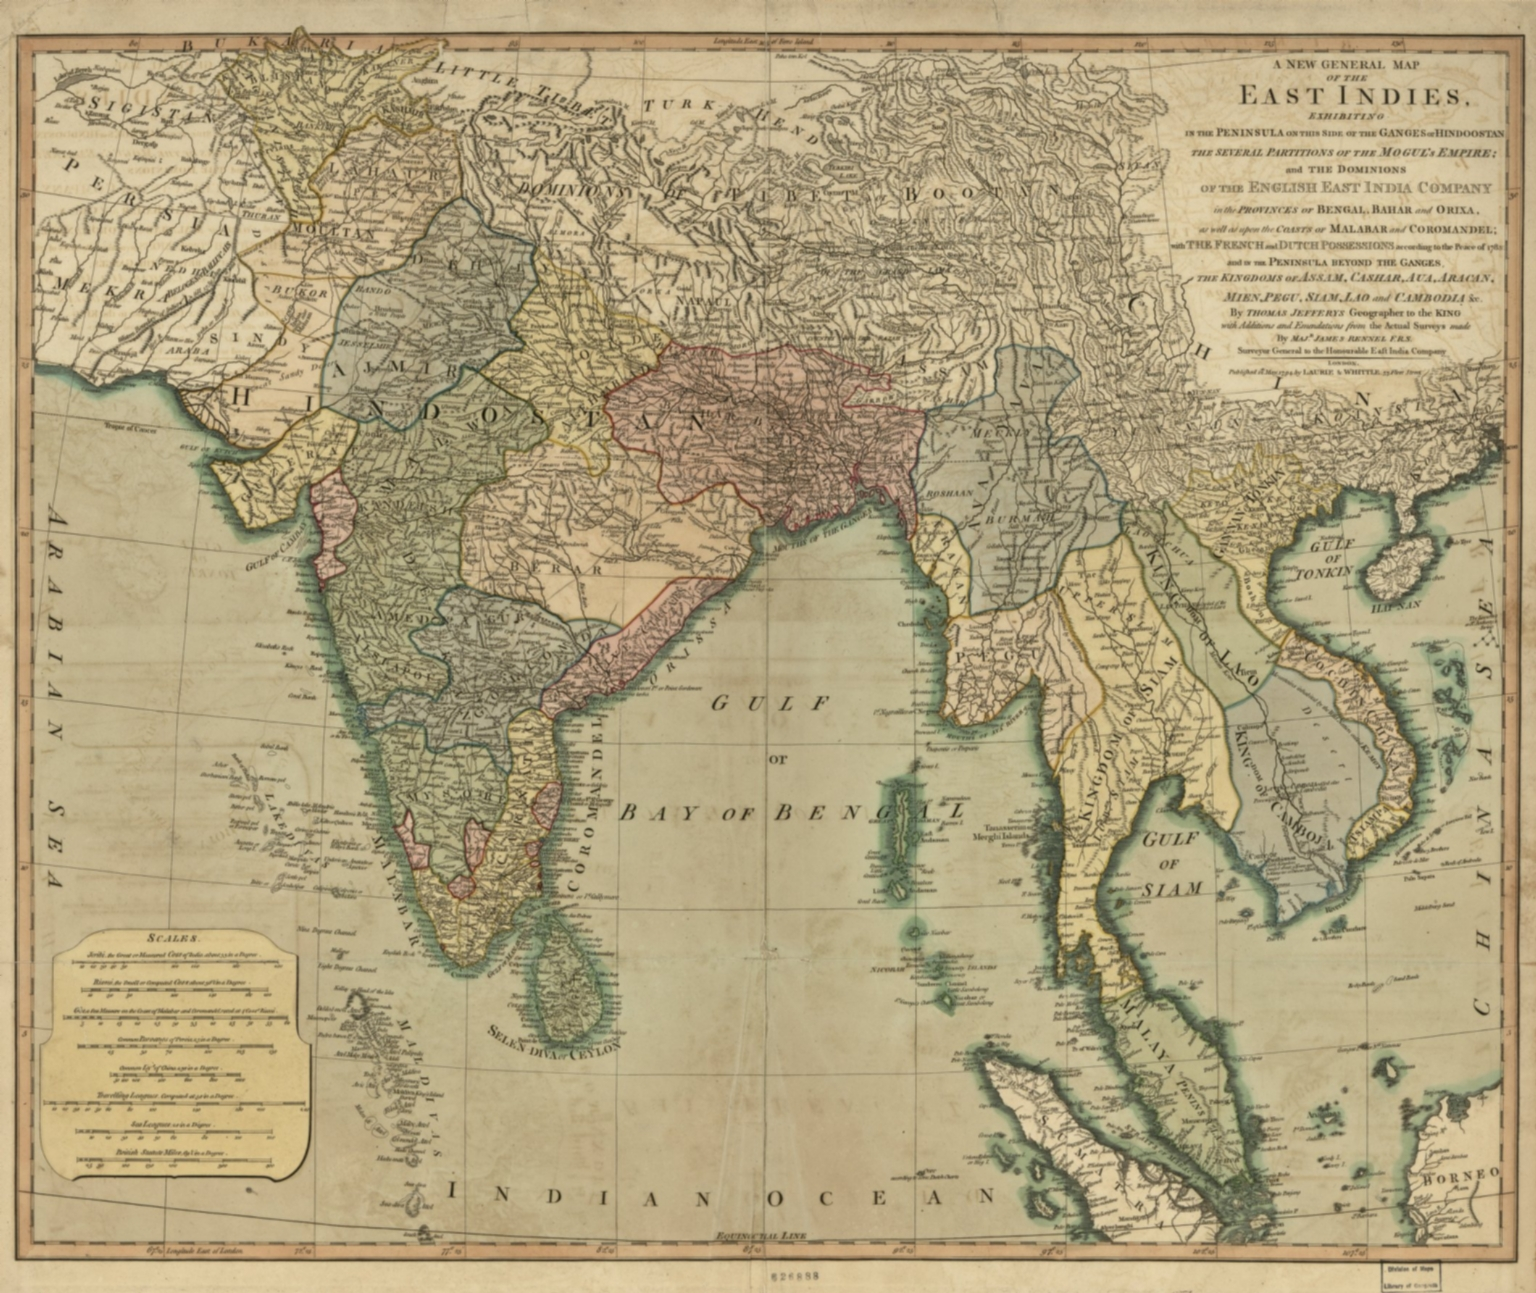 A new general map of the East Indies : exhibiting in the Peninsula on this side of the Ganges, or Hindoostan, the several partitions of the Mogul's Empire ; and the dominions of the English East India Company in the provinces of Bengal, Bahar, Orixa, as well as upon the coasts of Malabar and Coromandel ; with the French and Dutch possessions according to the peace of 1783 : and in the peninsula beyond the Ganges, the kingdoms of Assam, Cashar, Aua, Aracan, Mien, Pegu, Siam, Lao and Cambodia, &c.